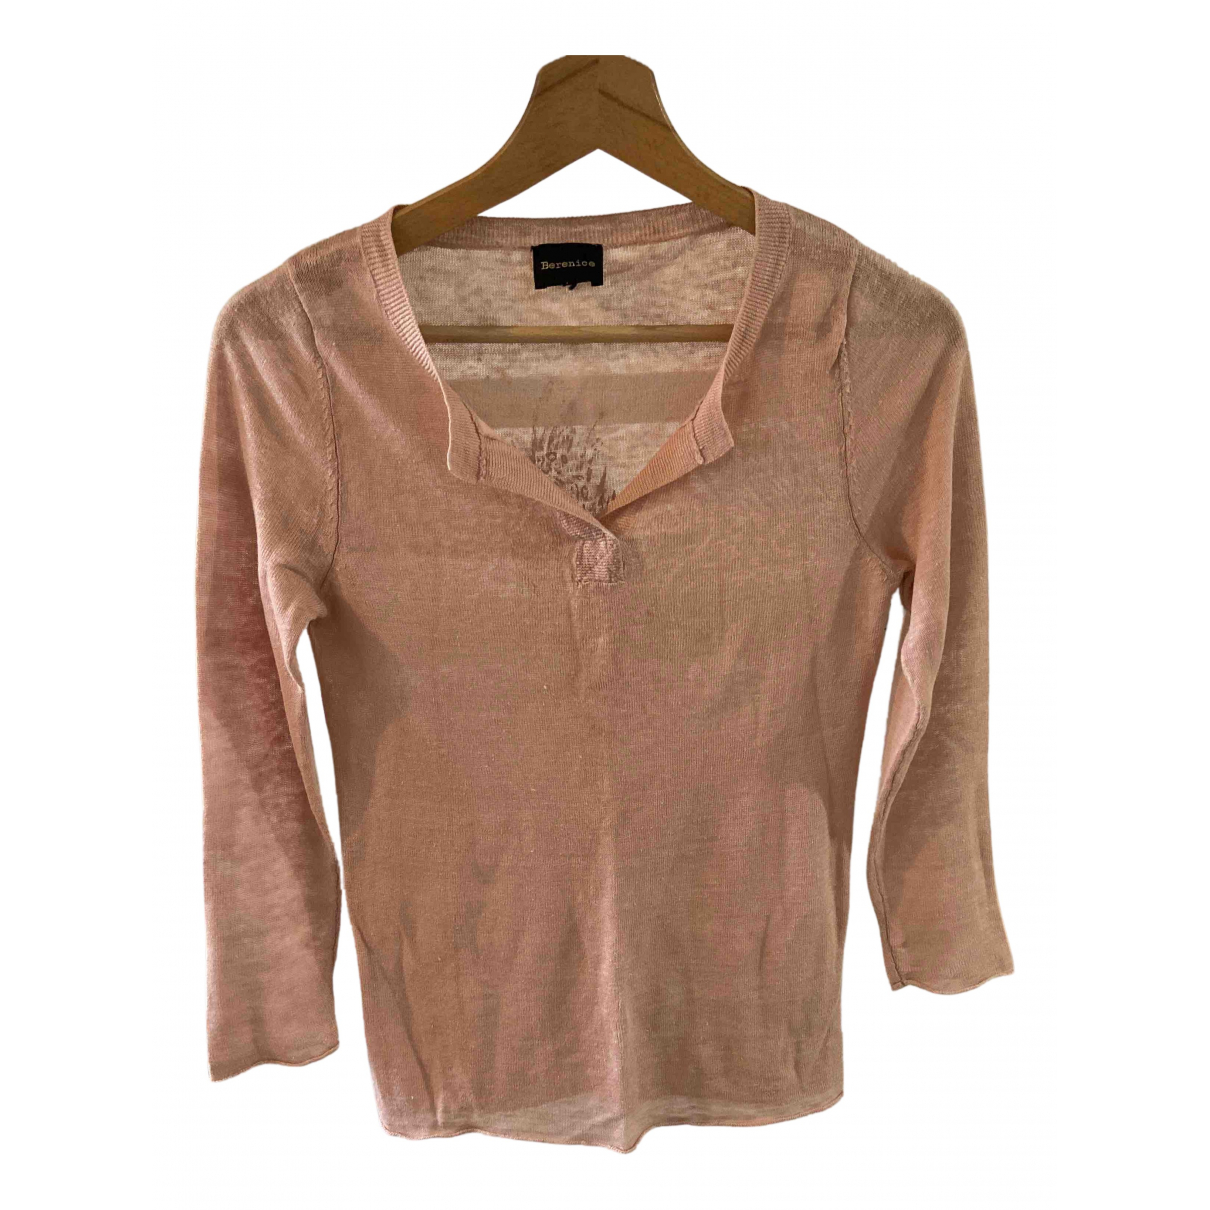 Berenice \N Pink Cotton  top for Women 36 FR